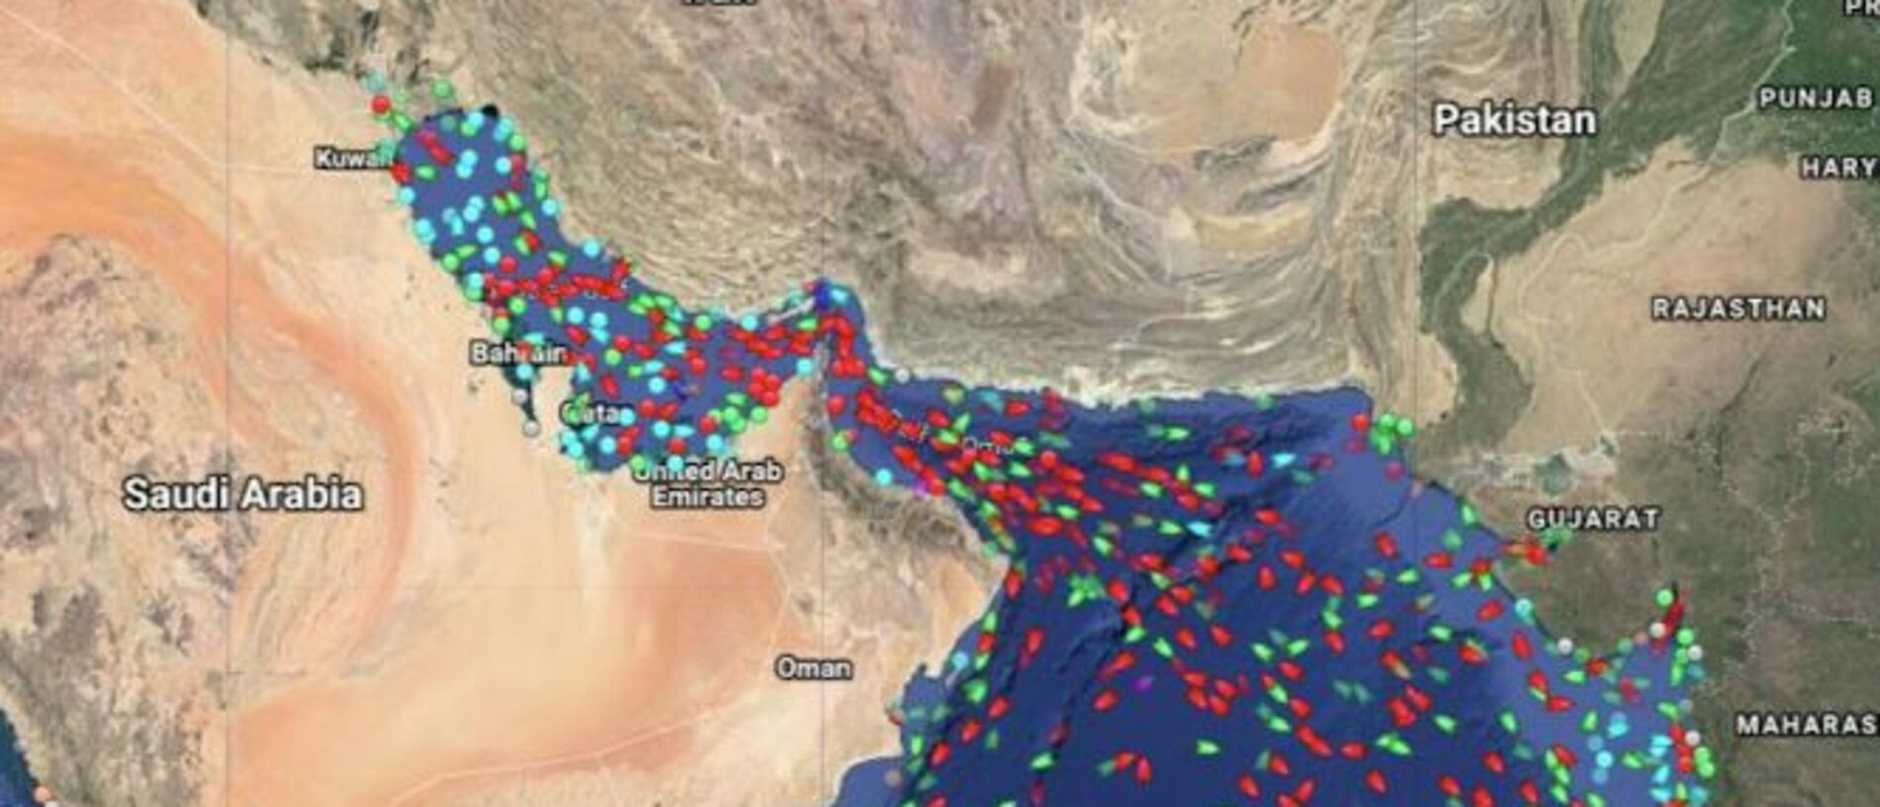 Most of the world's oil supply travels through the narrow Strait of Hormuz. Picture: Supplied